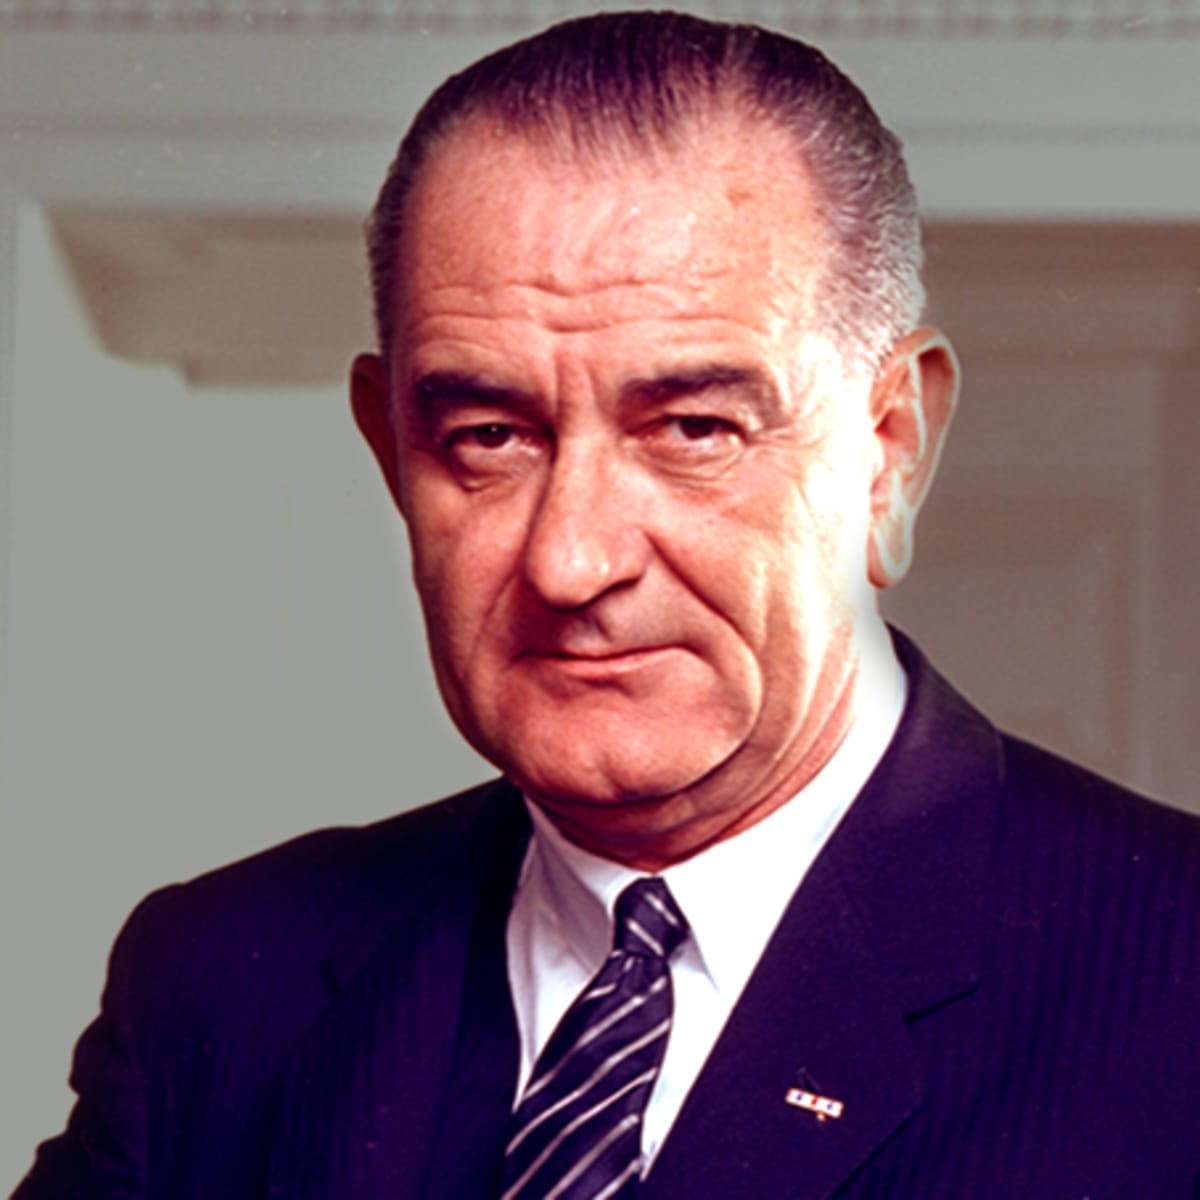 Lyndon B. Johnson - Facts, Great Society & Civil Rights - HISTORY